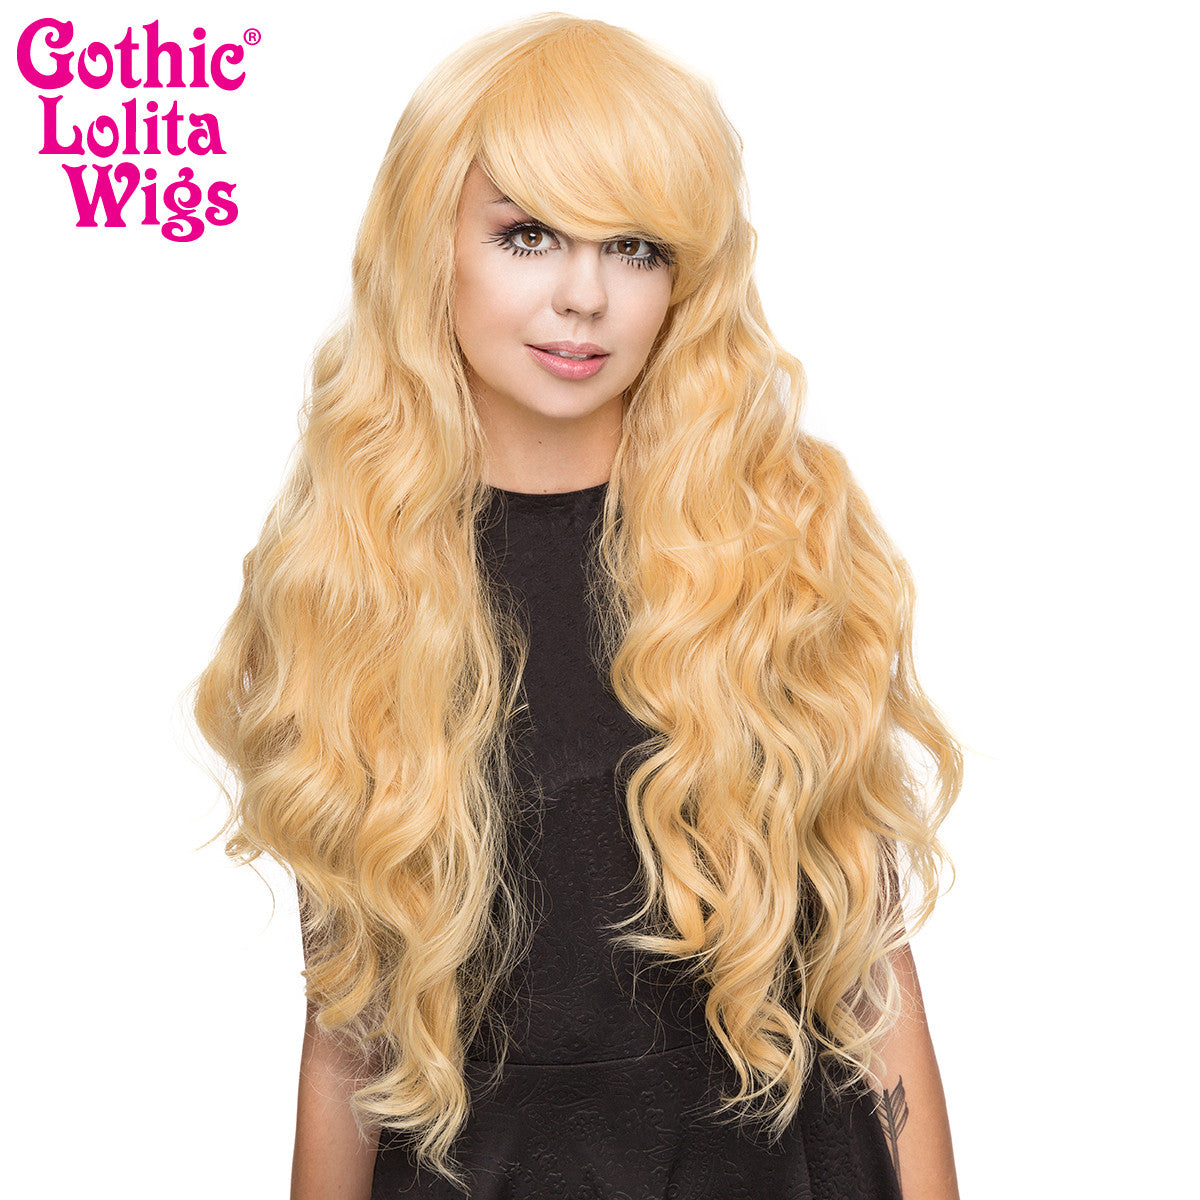 Gothic Lolita Wigs®  Classic Wavy Lolita™ Collection - Tokyo Blonde -00188